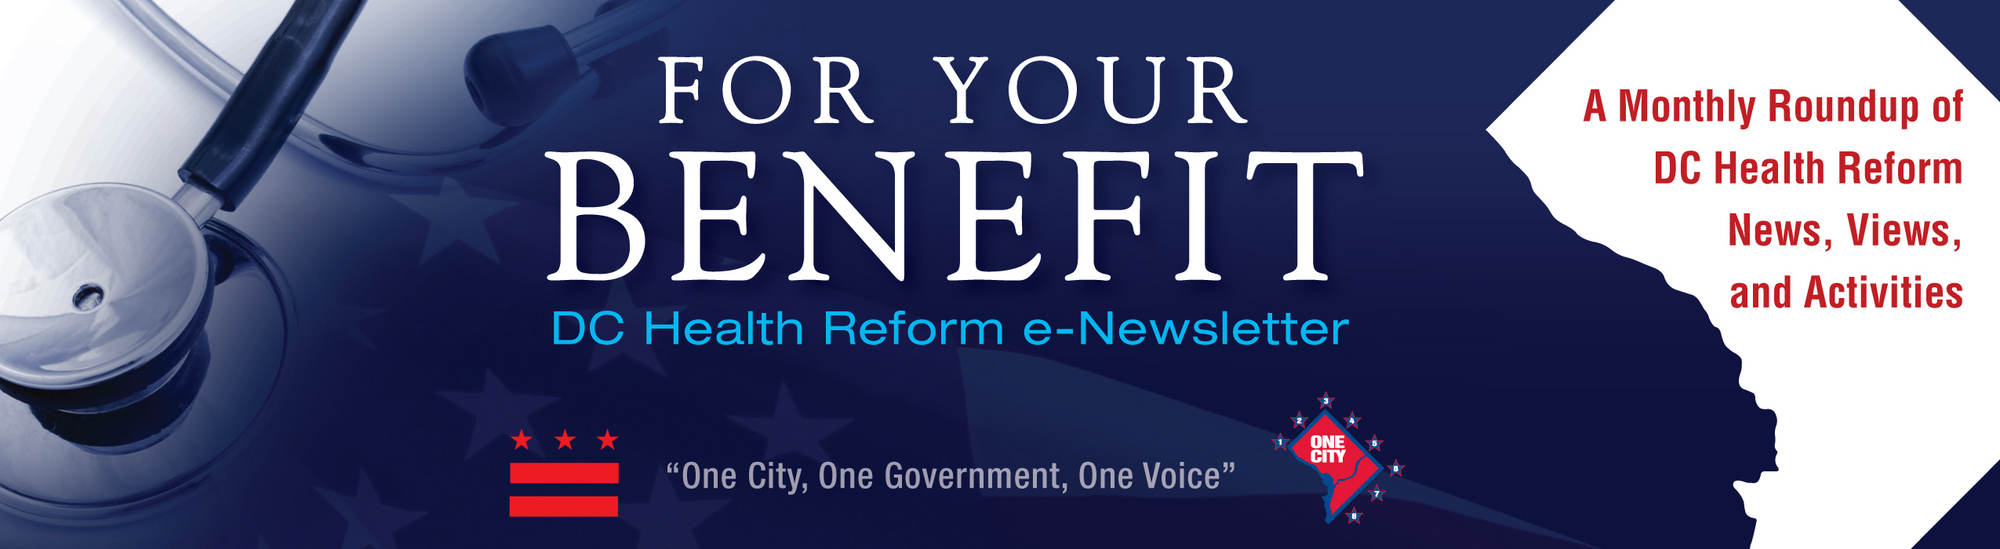 foryourbenefit